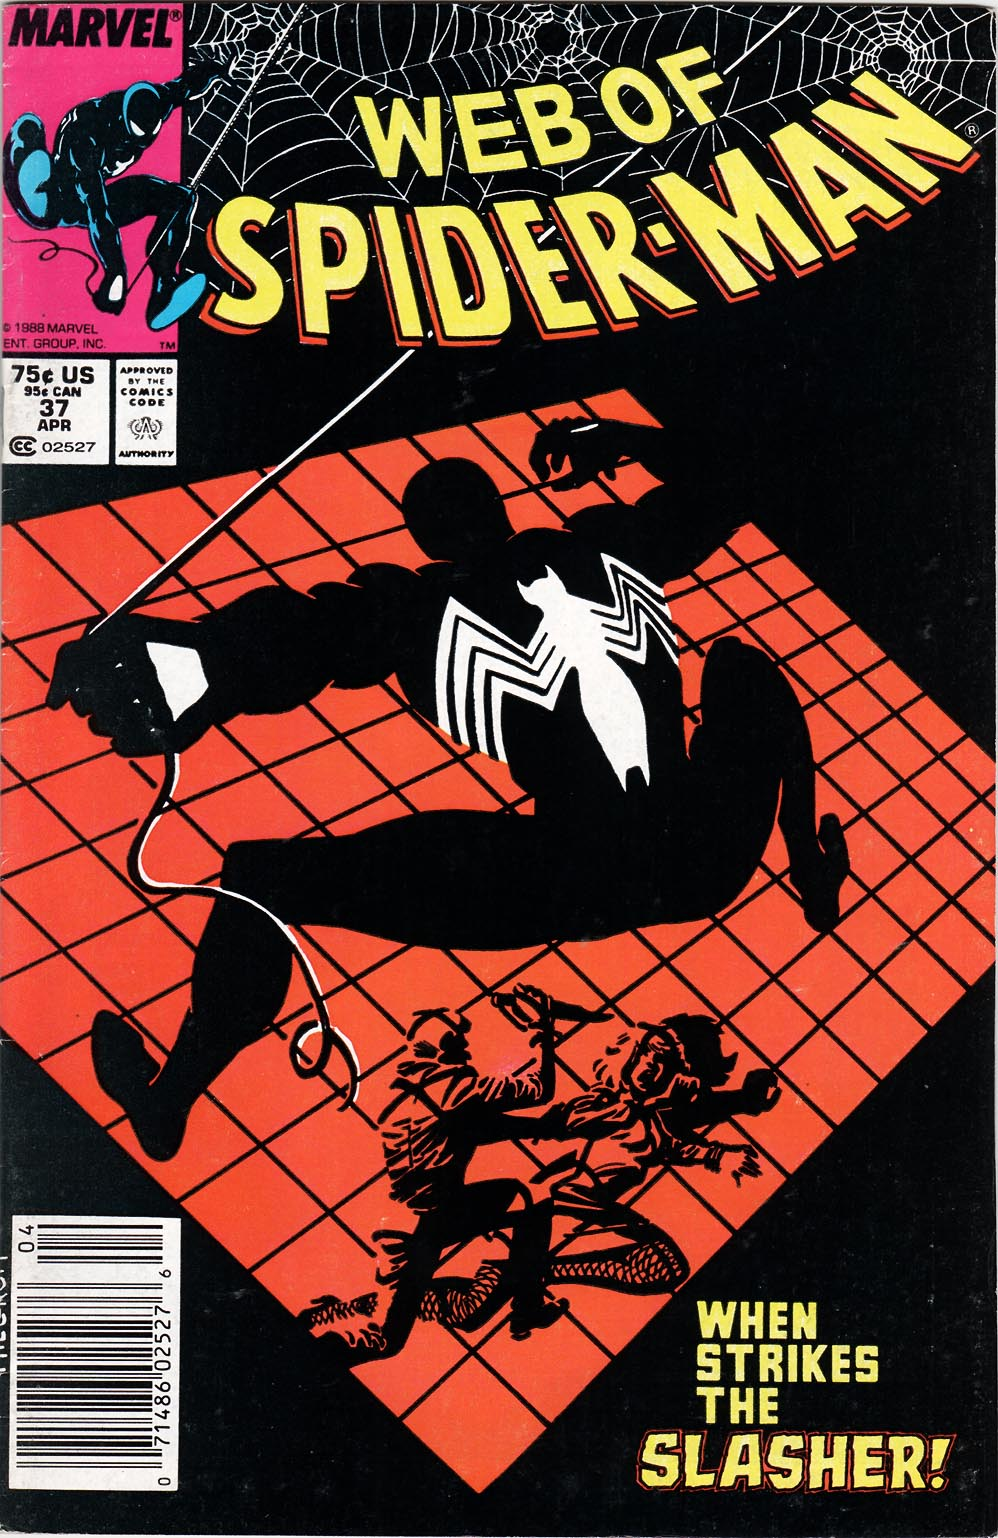 Web of Spider-Man (1985) 37 Page 1